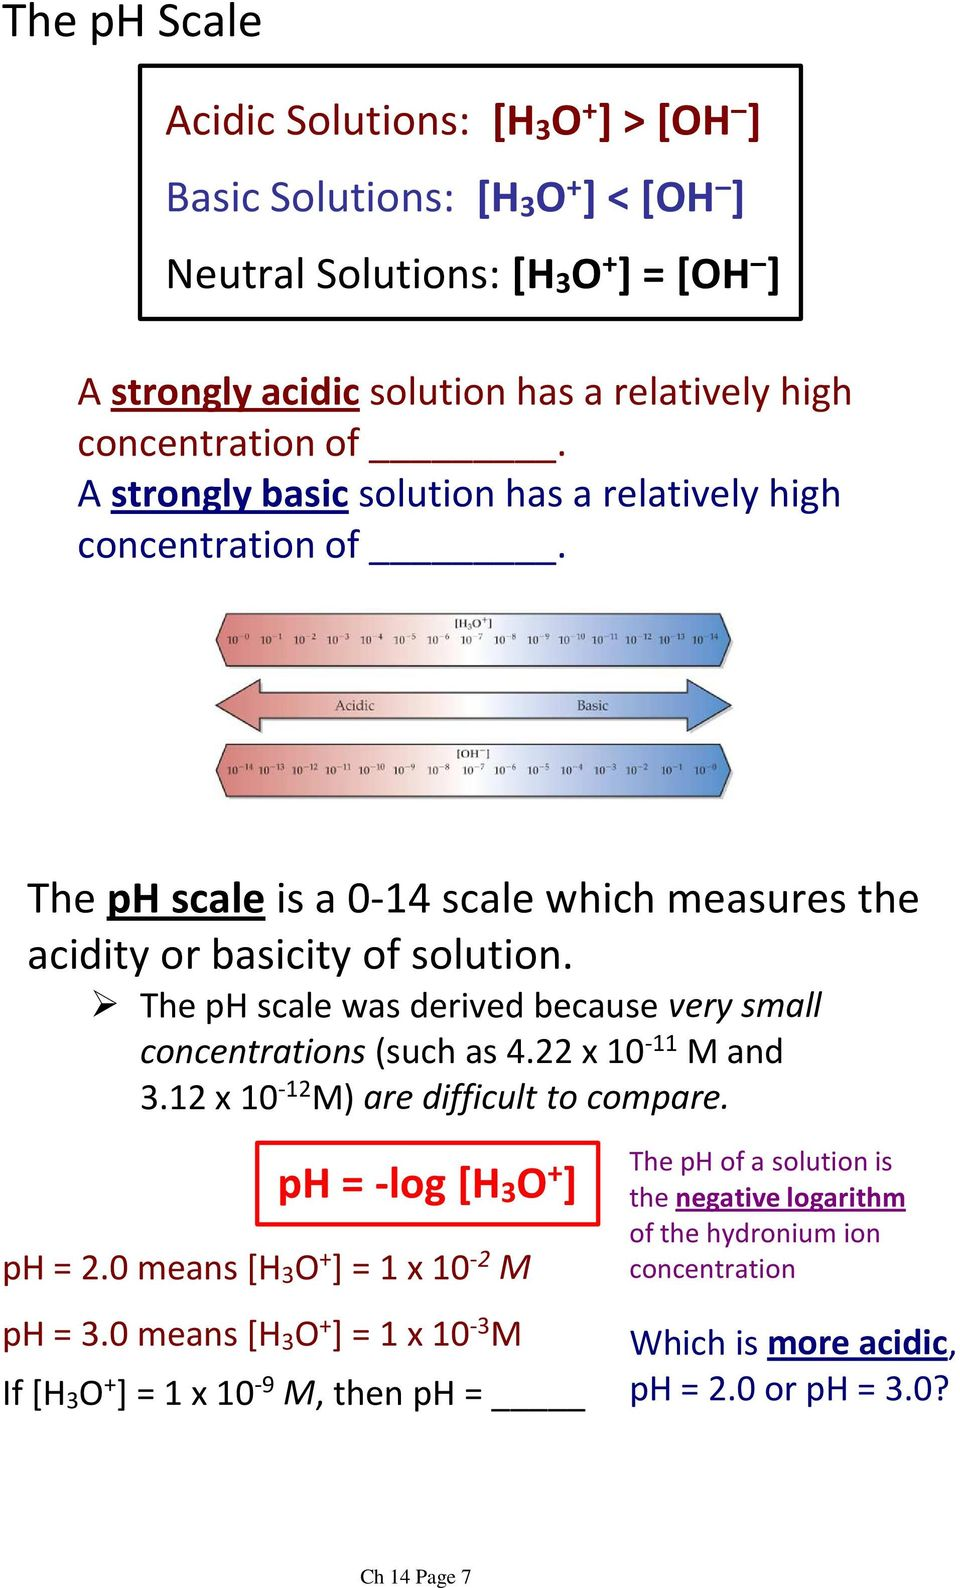 The ph scale was derived because very small concentrations(such as 4.22 x 10-11 M and 3.12 x 10-12 M) are difficult to compare. ph = -log [H 3 O + ] ph = 2.